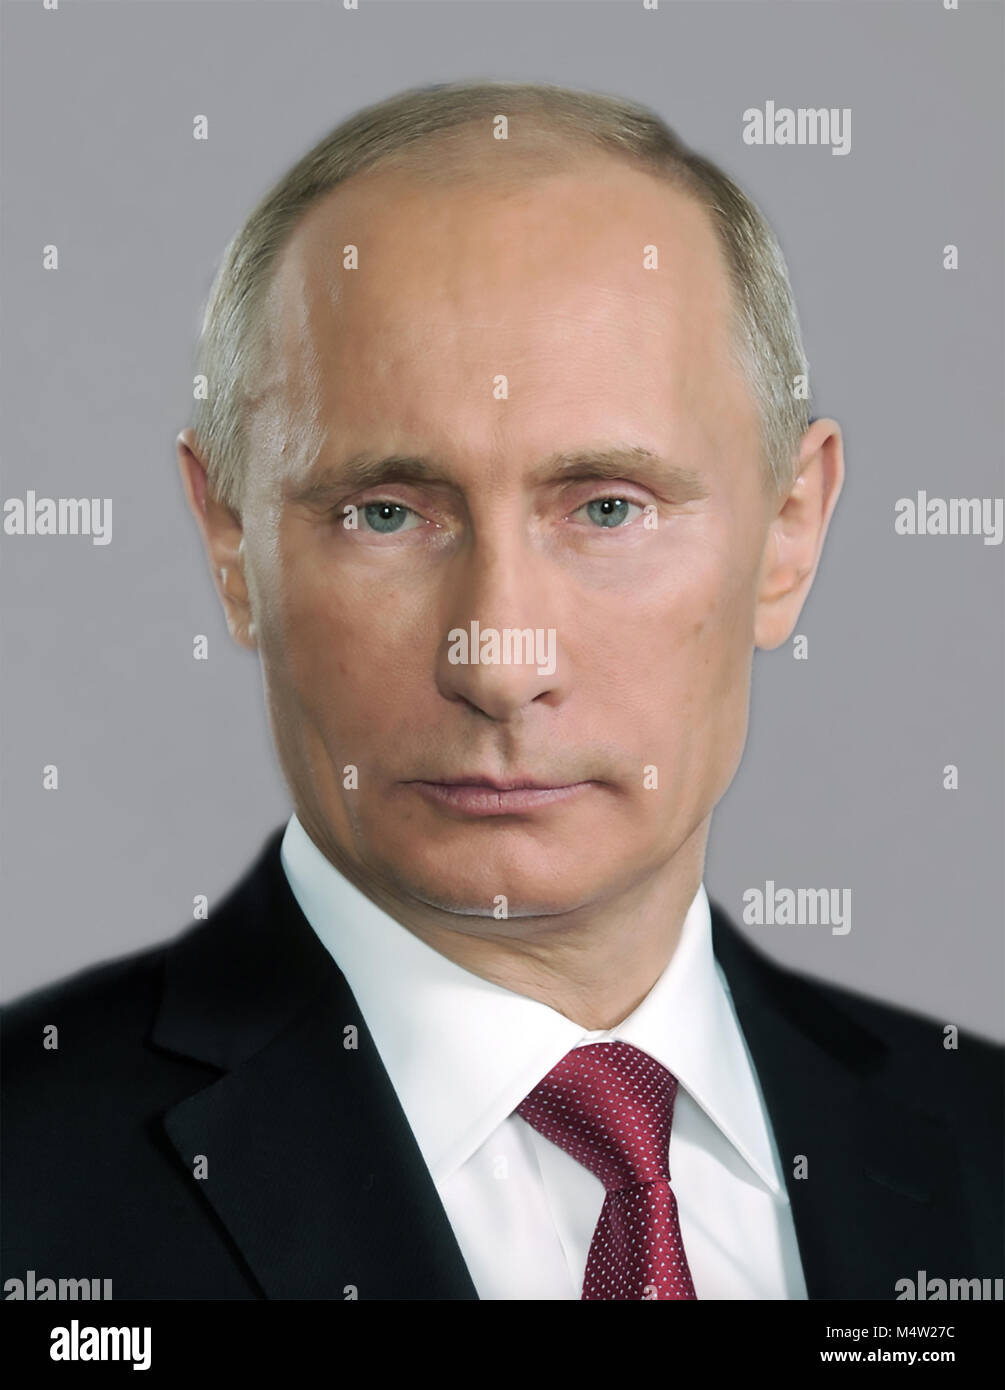 VLADIMIR PUTIN as President of Russia in January 2006. Photo: www.kremlin.ru - Stock Image